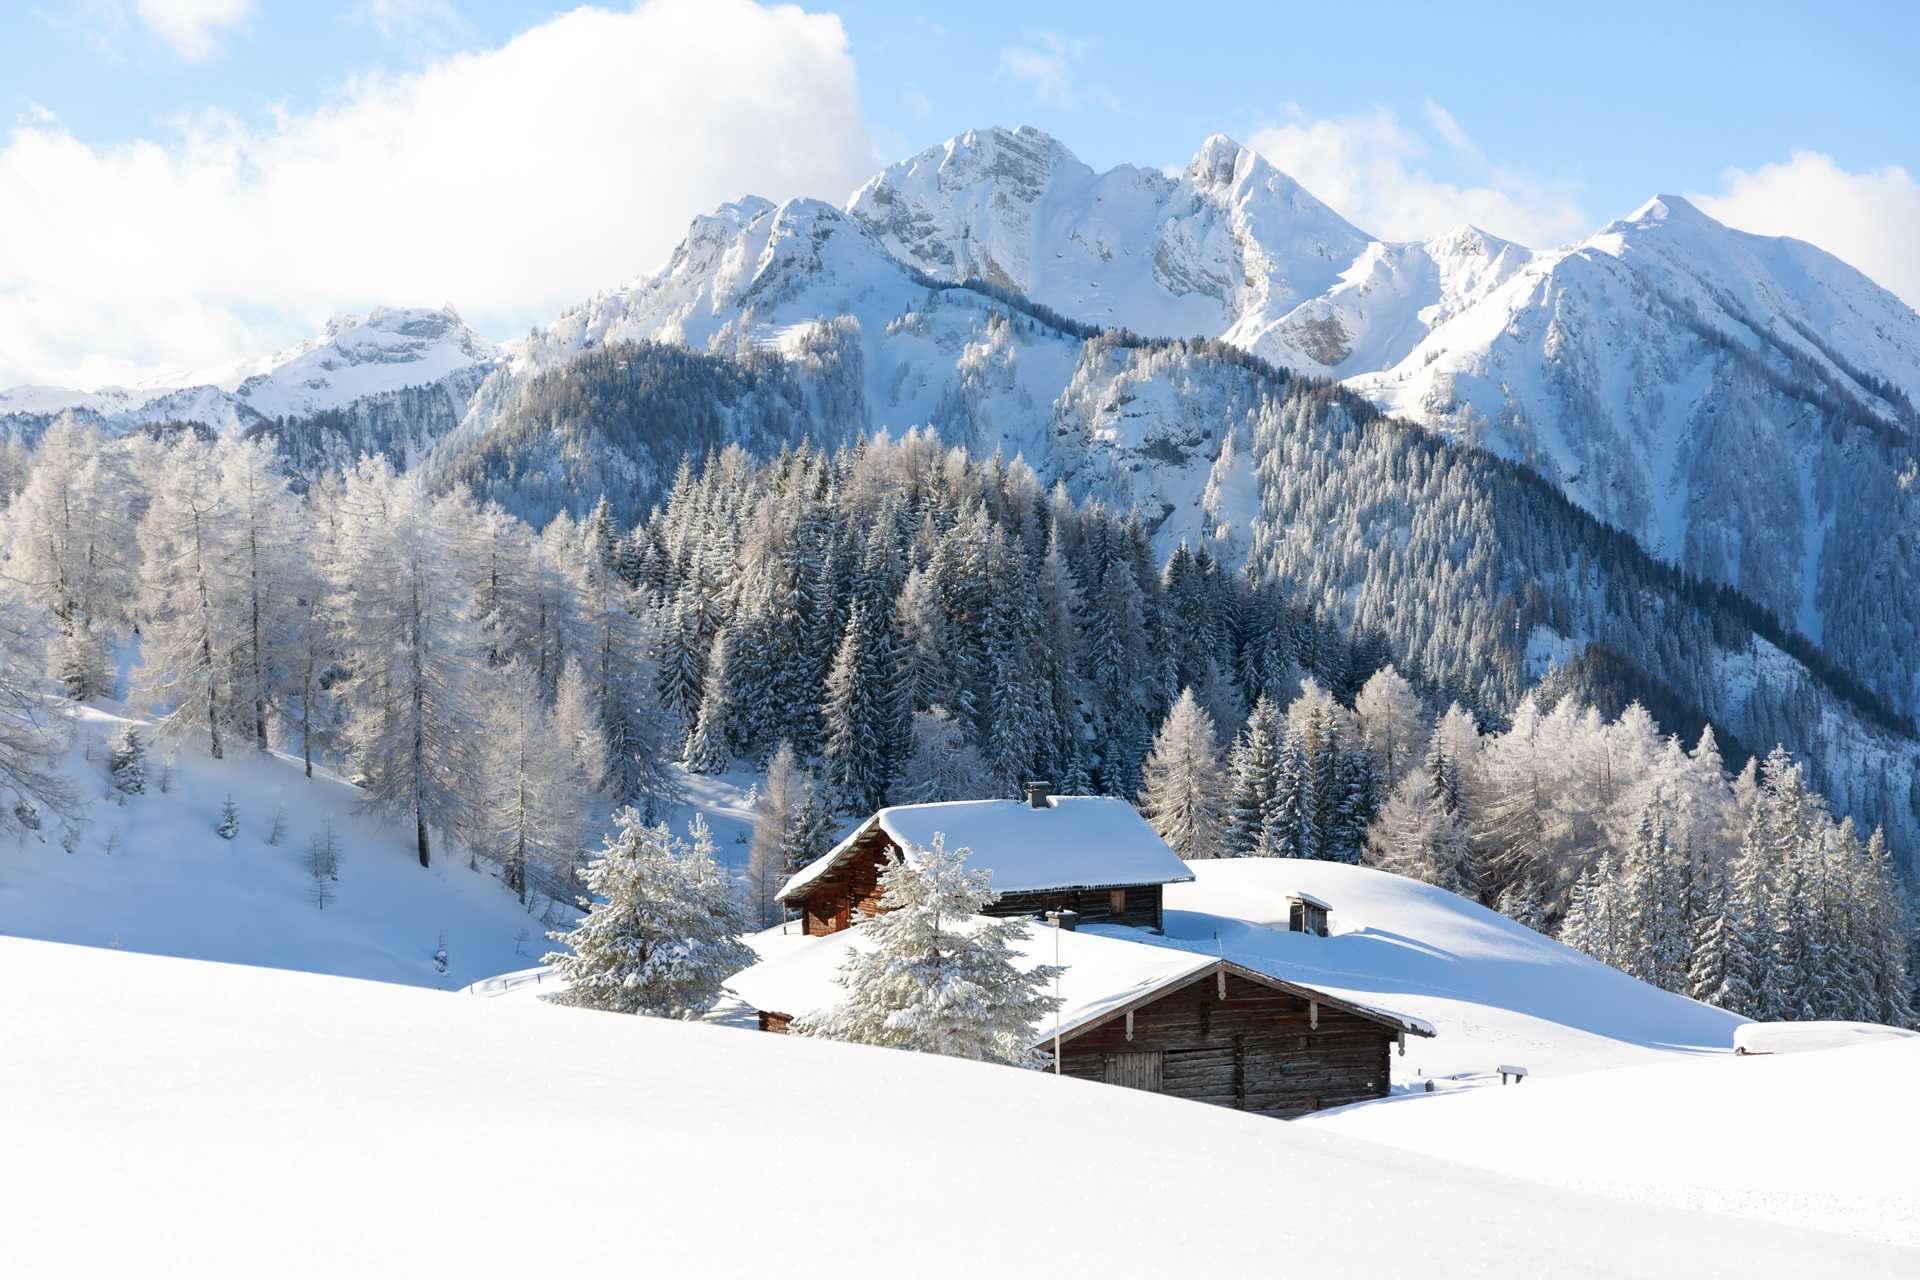 chalet in the Alps